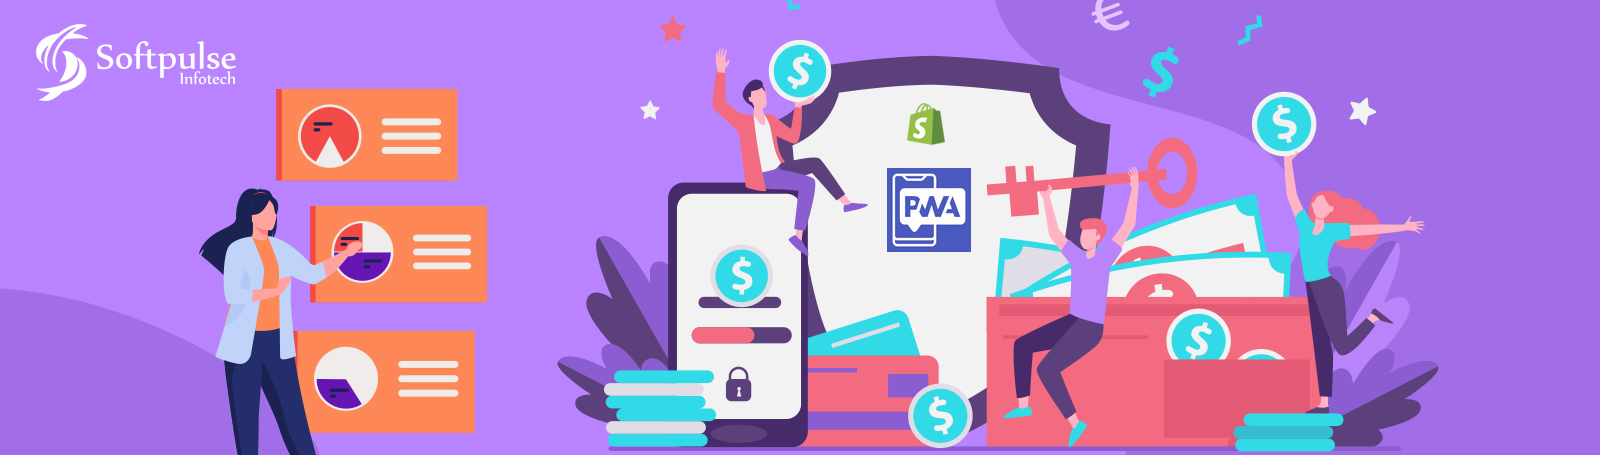 Shopify Progressive Web App: Why it is Important to Grow Business